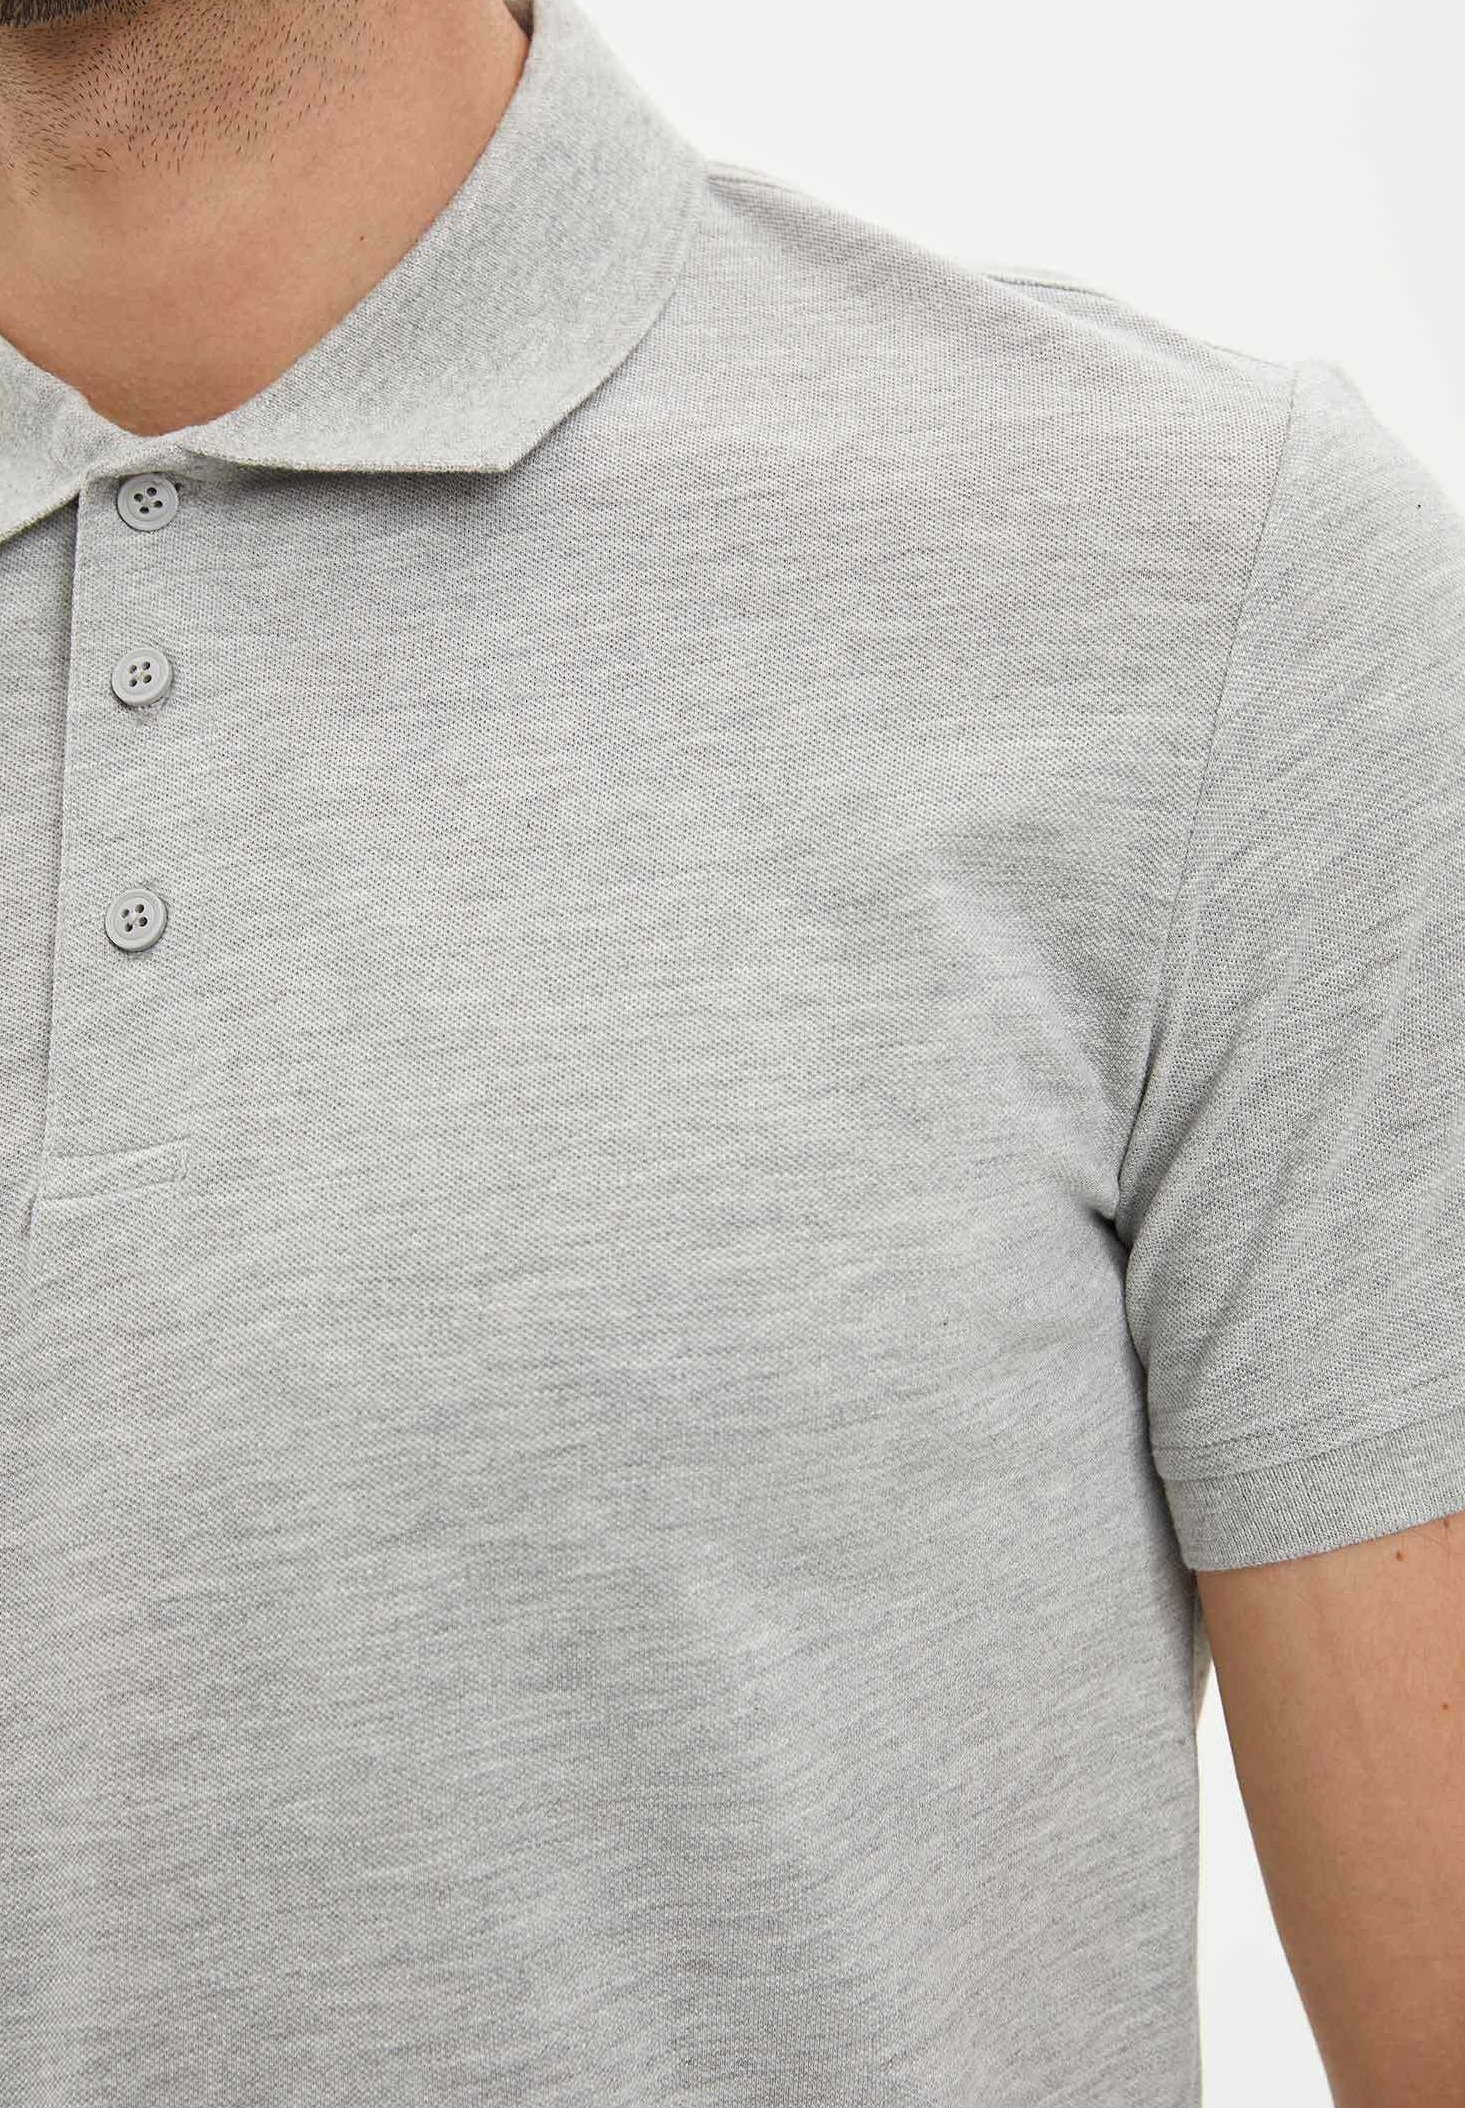 DeFacto Polo shirt - grey yFlKy